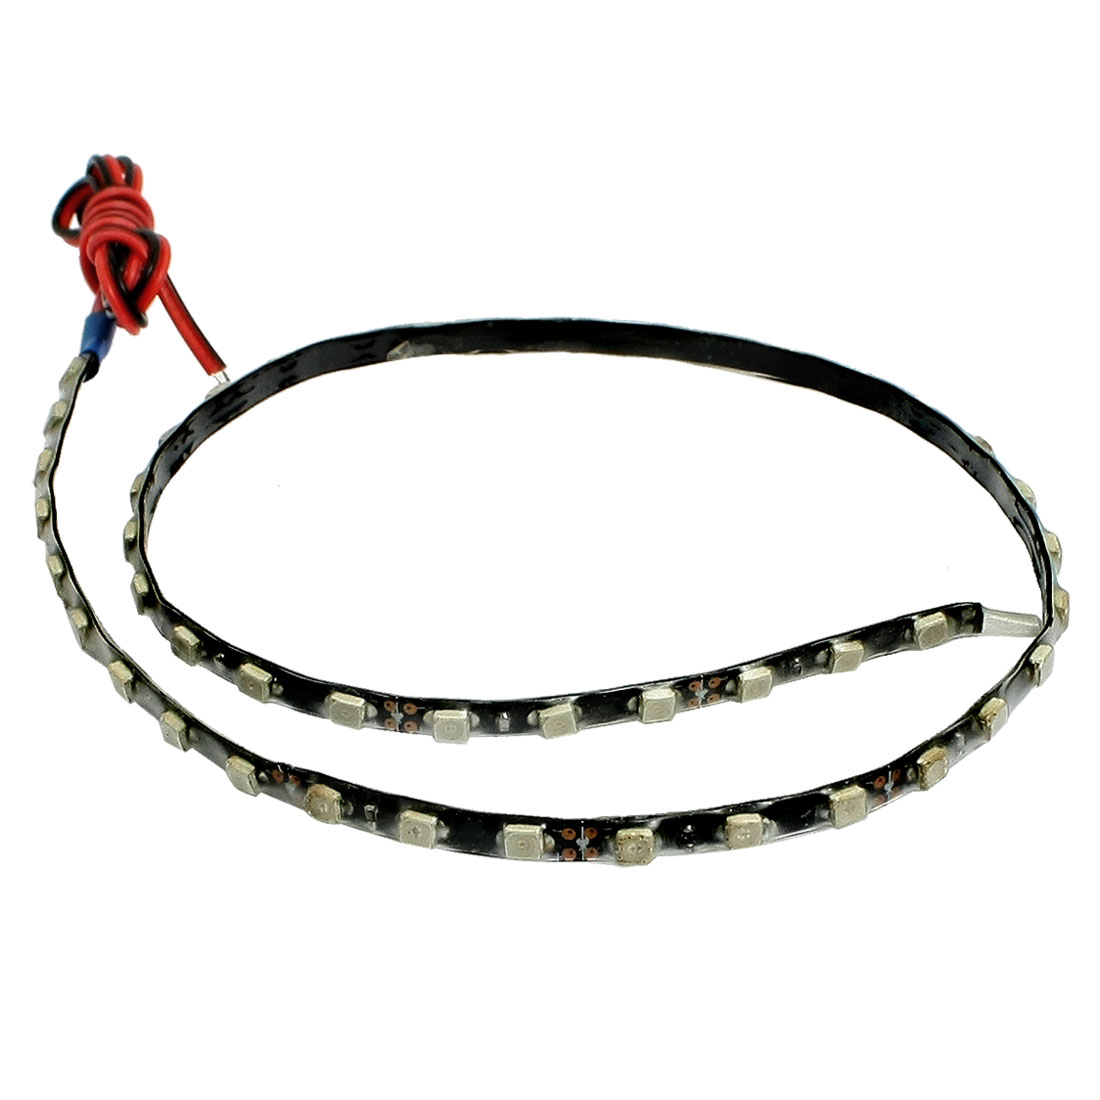 Auto Car Red 1210 3528 45-SMD LED Light Flexible Lamp Strip 45cm